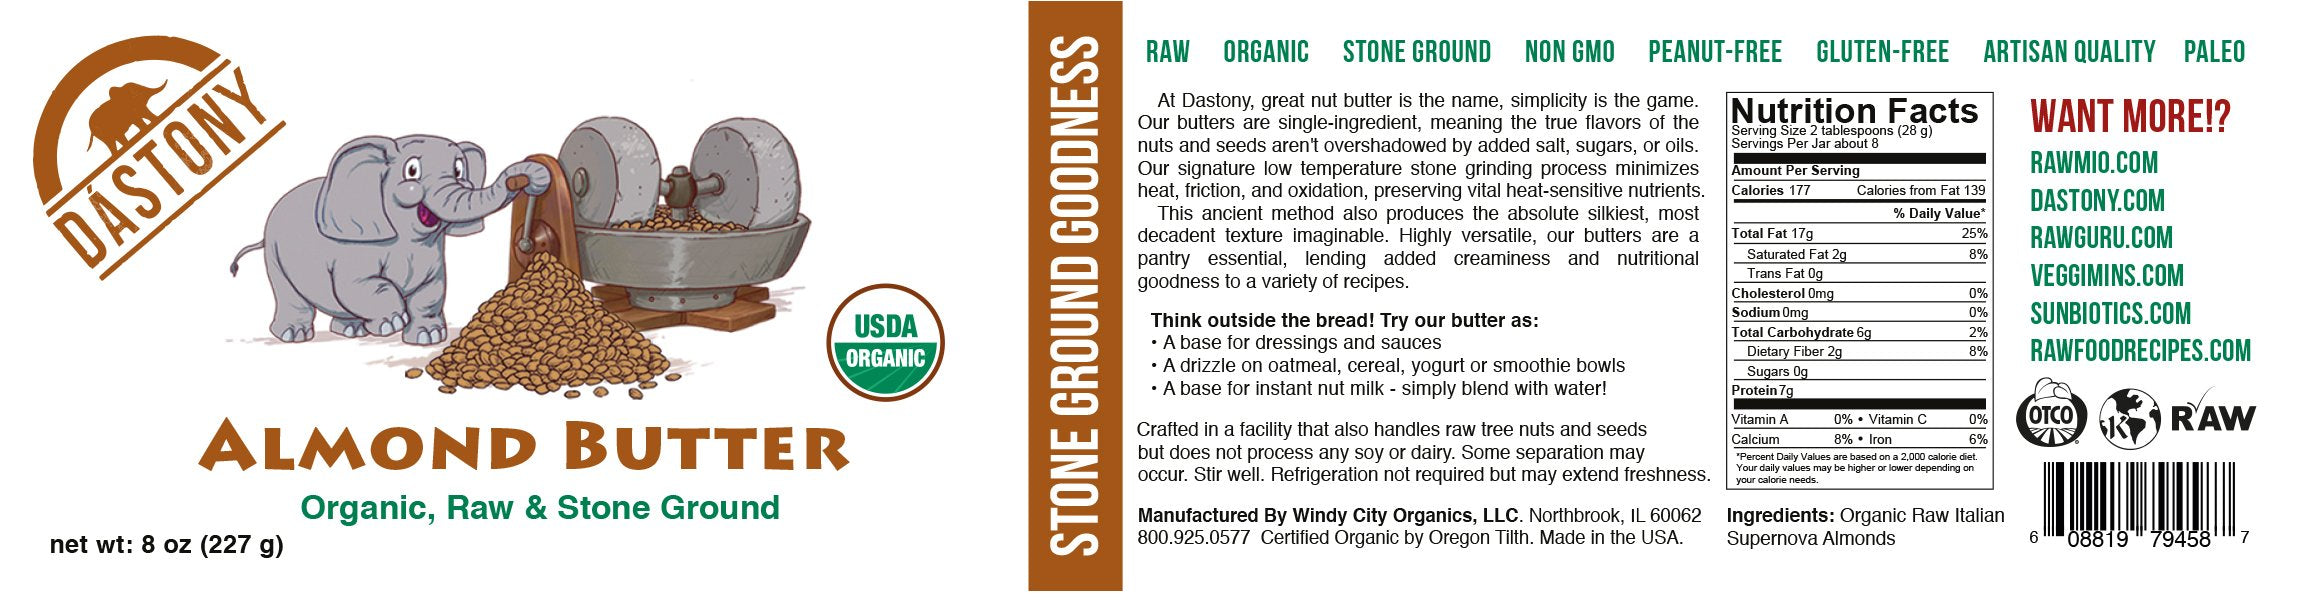 Stone Ground 100% Organic Raw Almond Butter - 8 oz